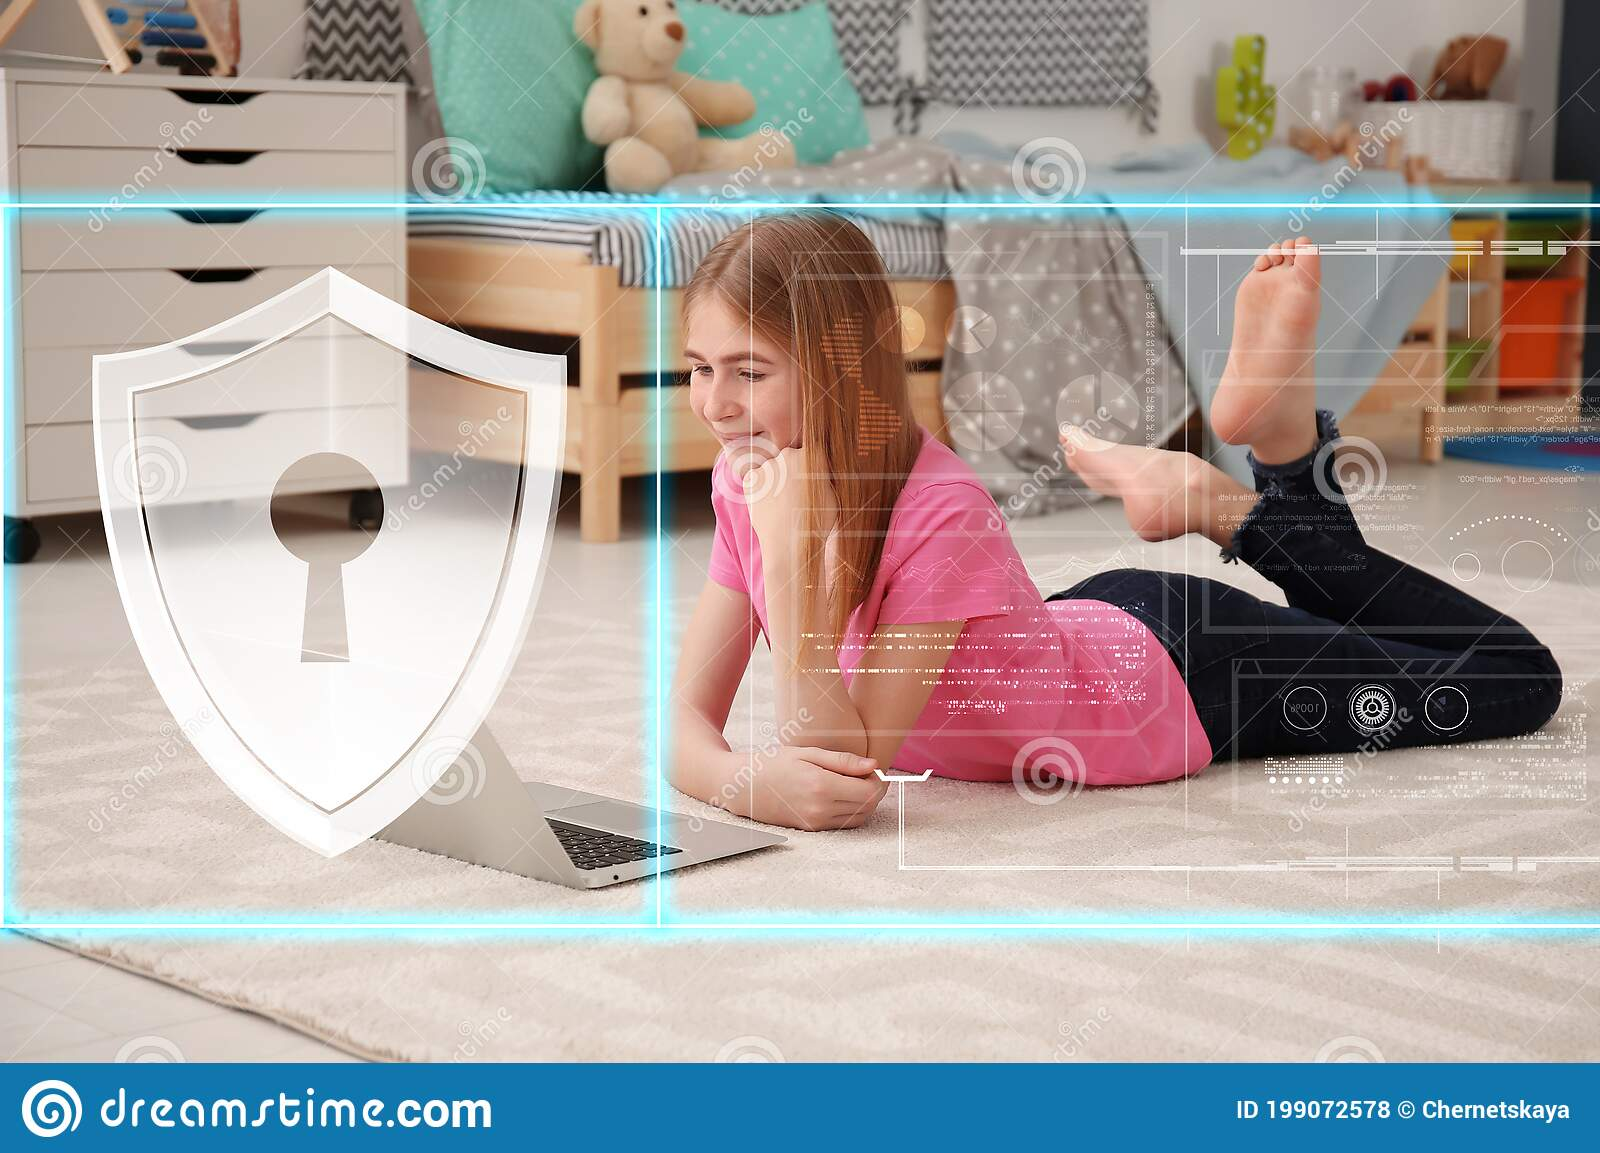 Child Safety Online Teenage Girl Using Laptop At Home Illustration Of Internet Blocking App Stock Photo Image Of Breach Information 199072578